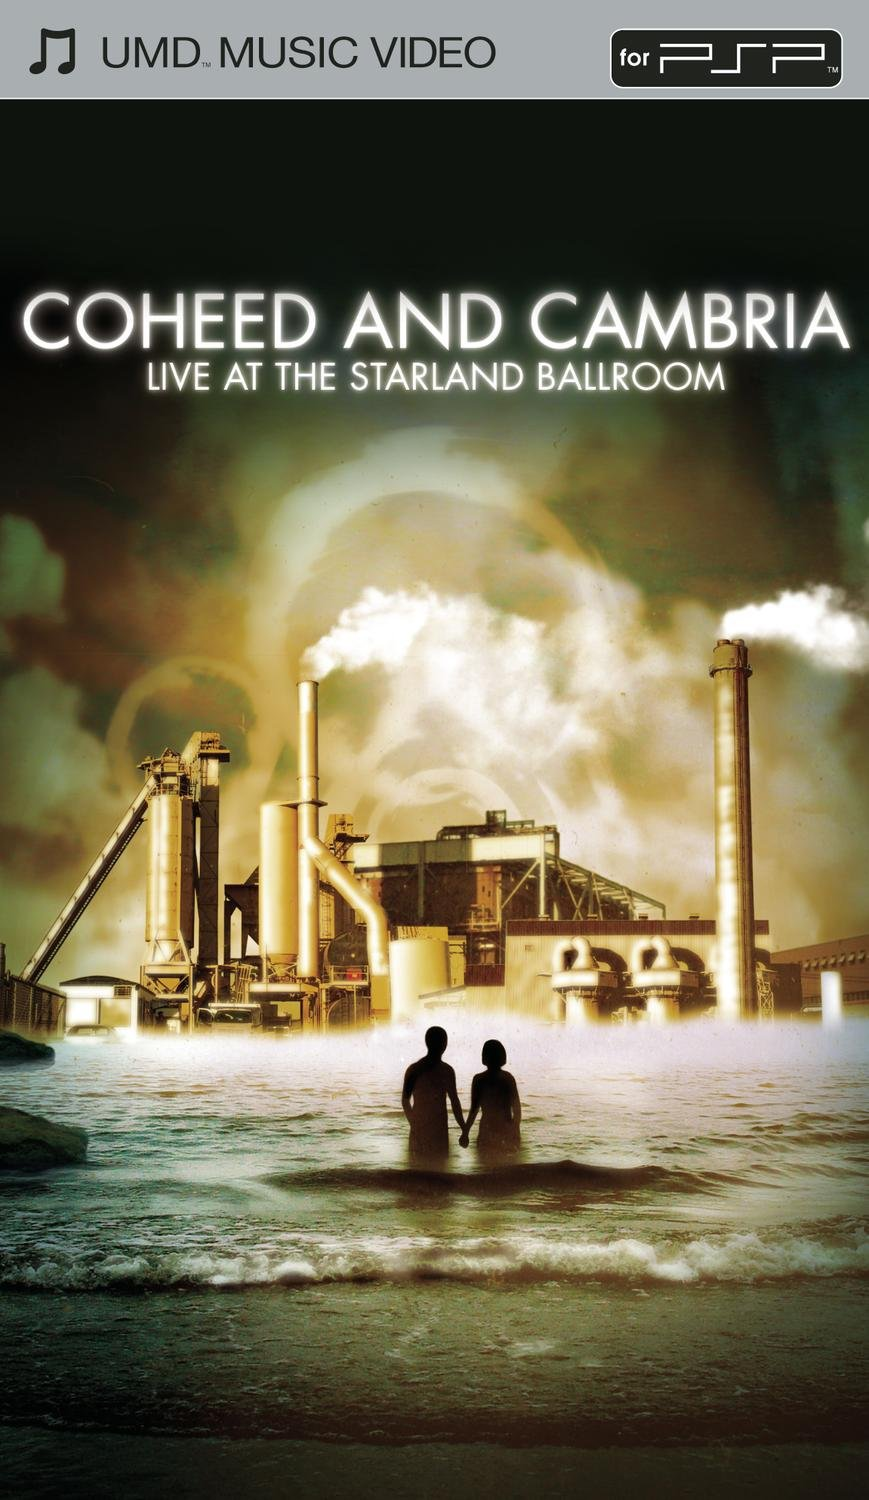 Coheed and Cambria: Live at the Starland Ballroom [UMD Mini For PSP]